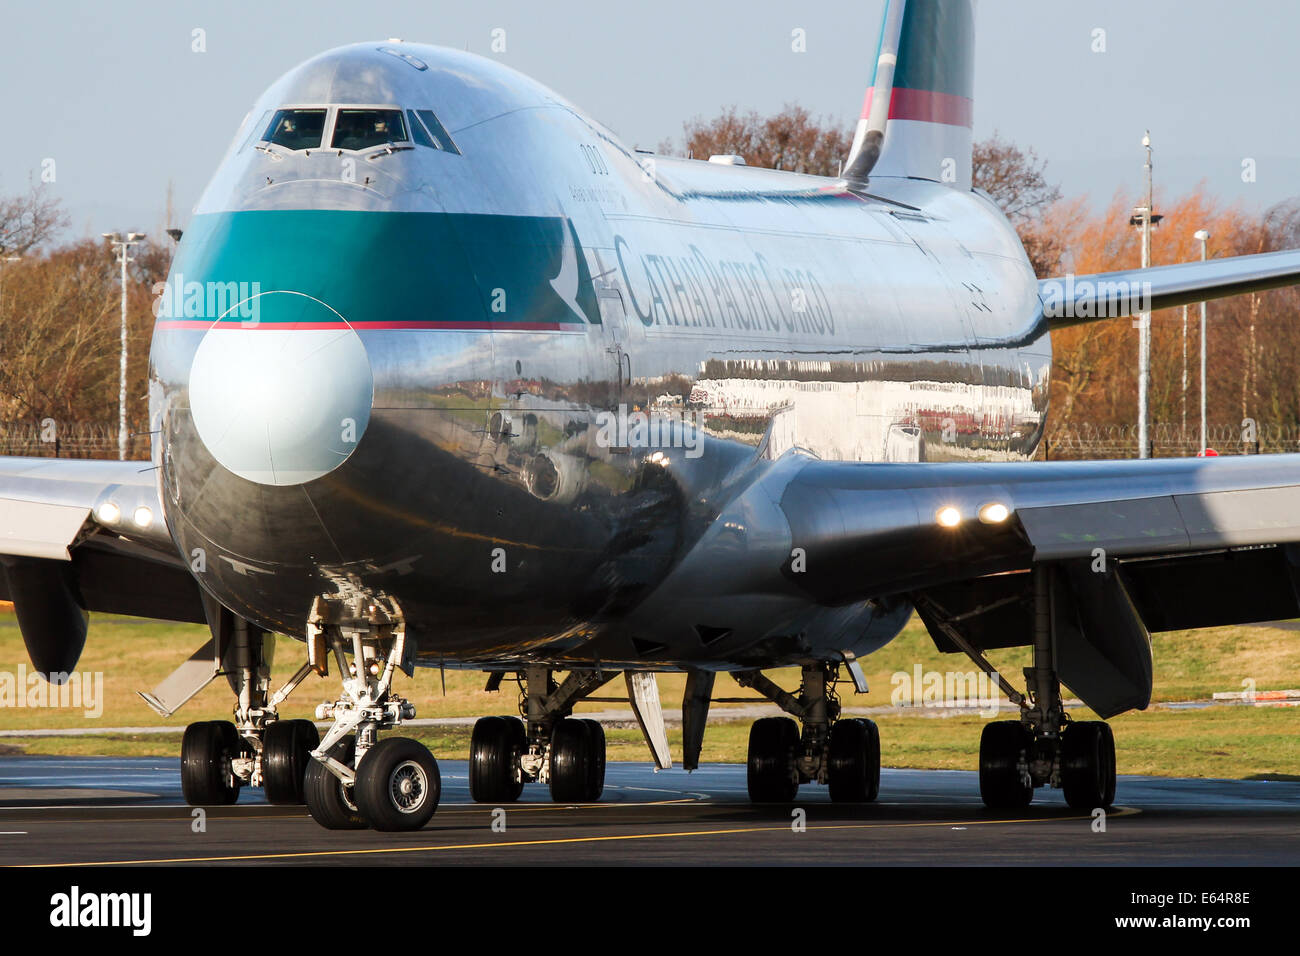 Cathay Pacific Cargo Boeing 747-400 lines up on runway 23R at Manchester airport. - Stock Image